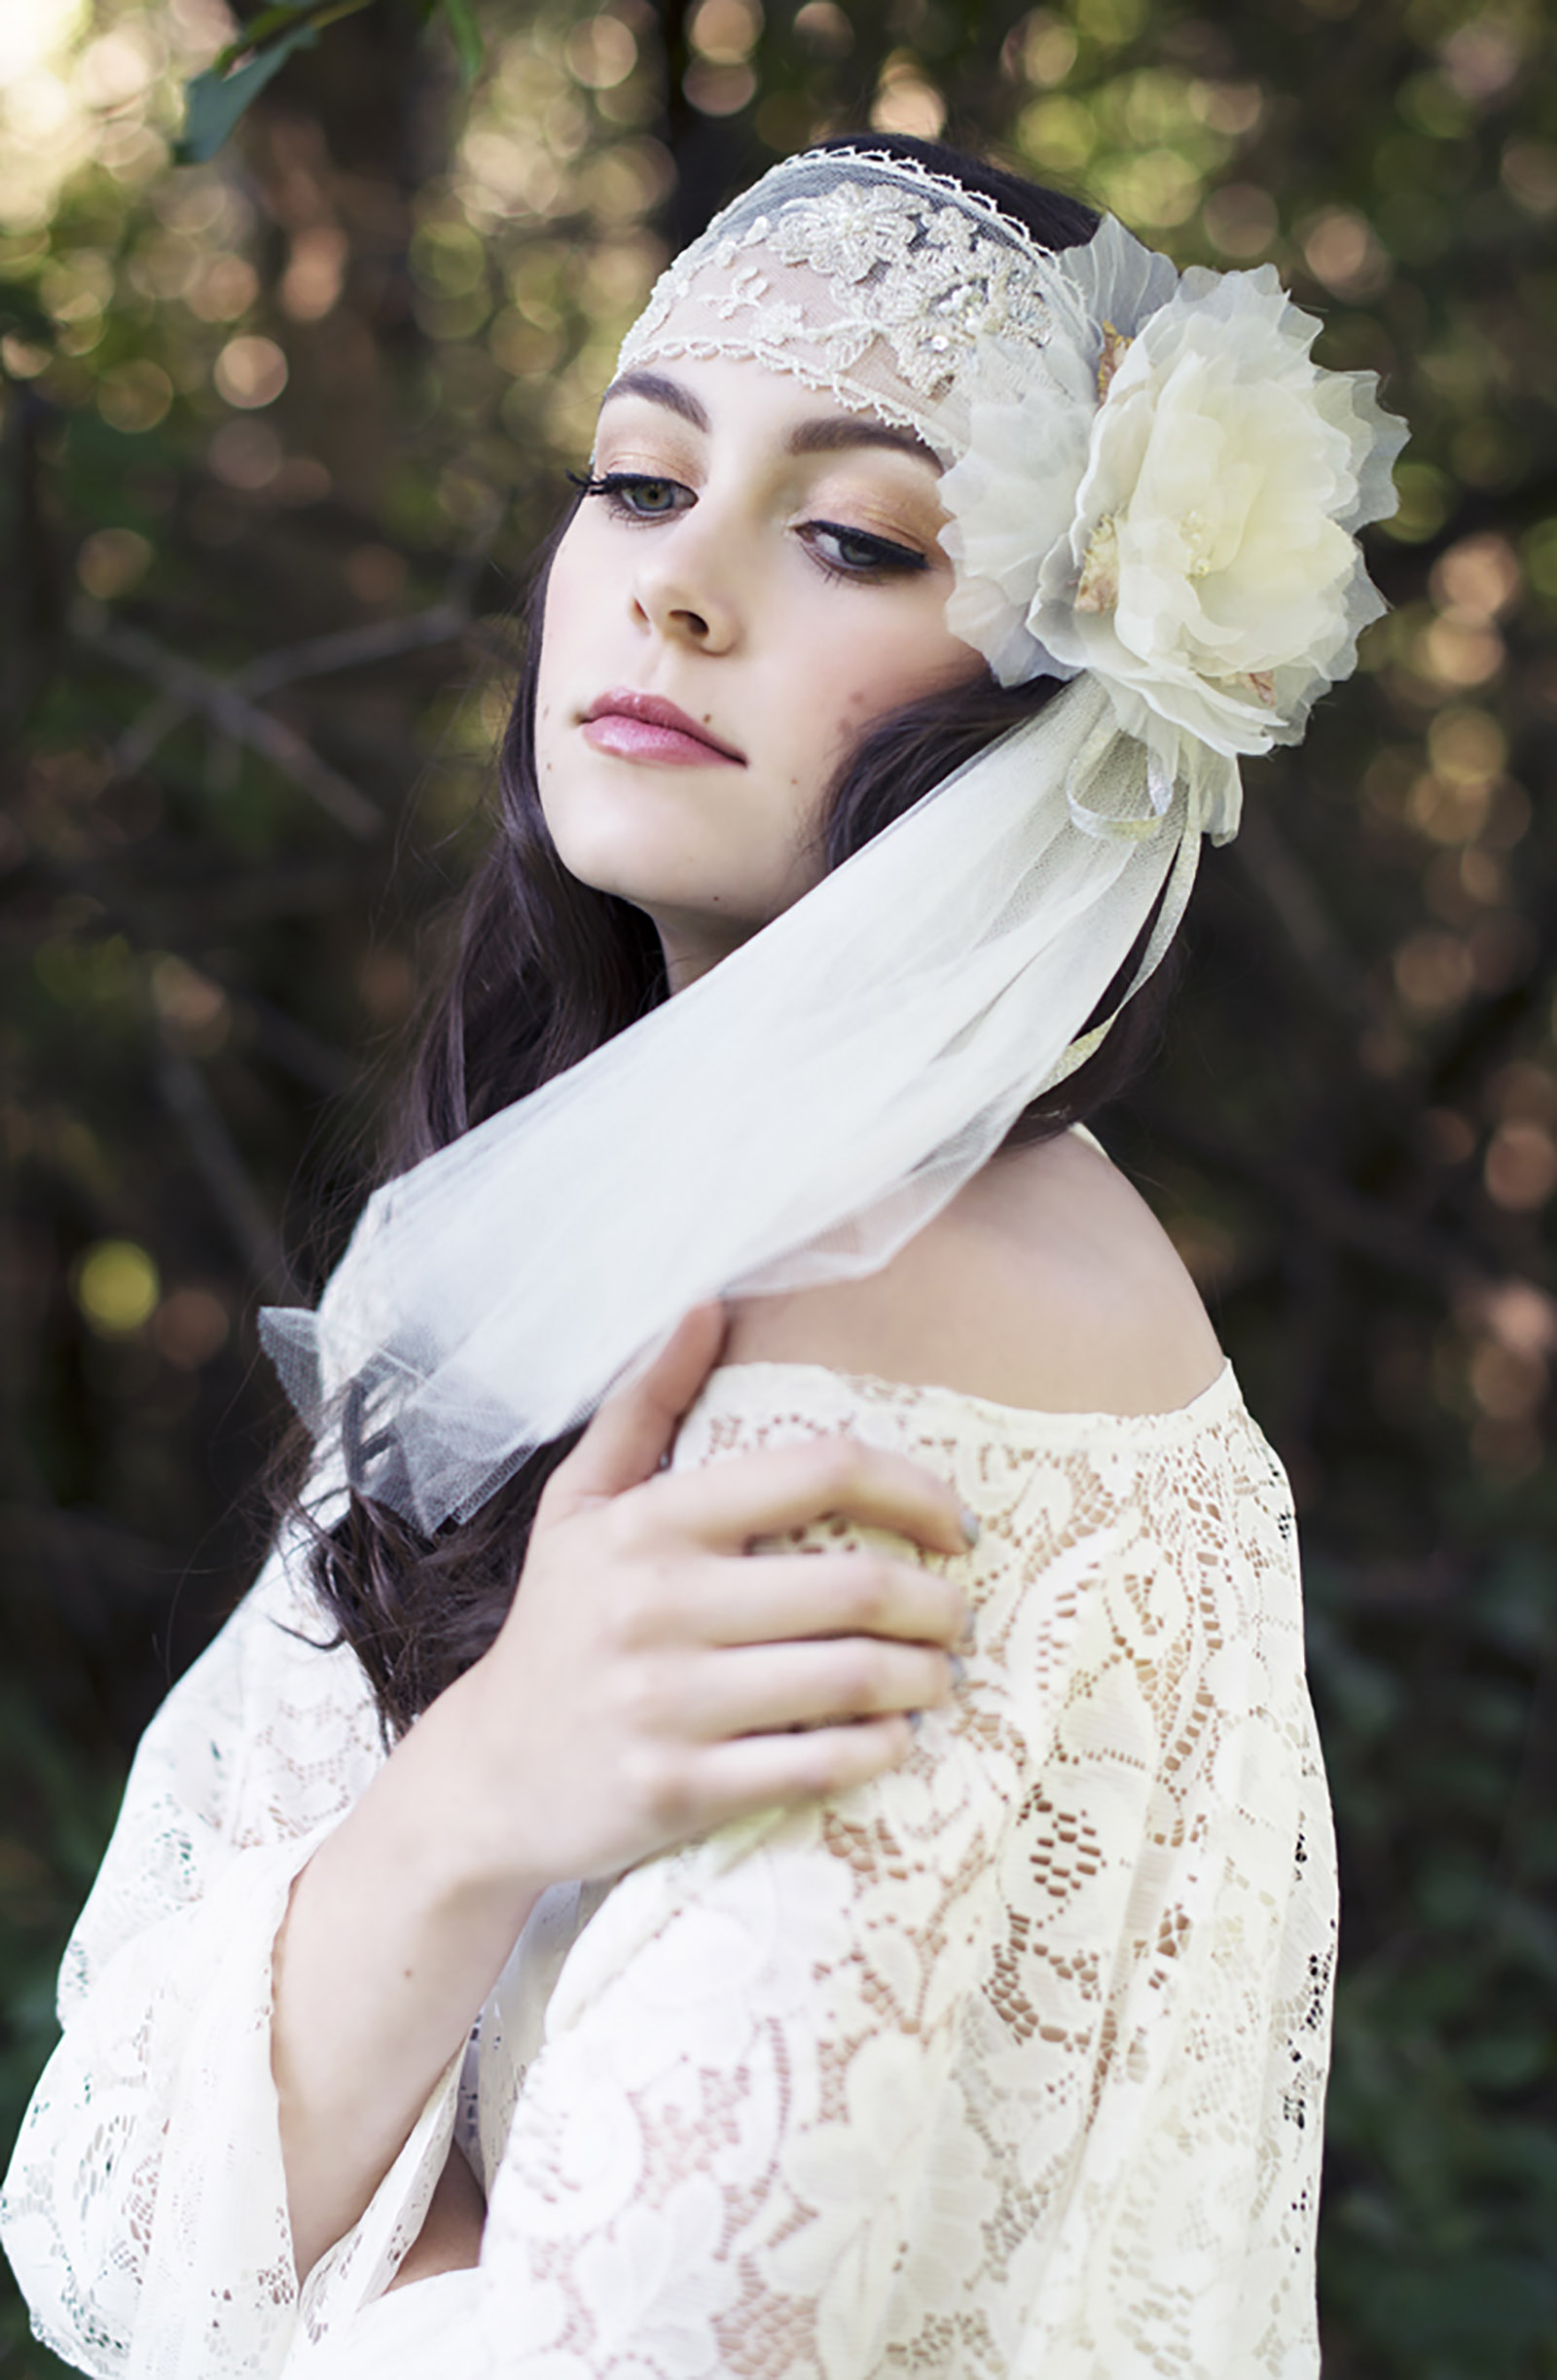 Whitney-Heard-Photography-Blair-Nadeau-Millinery-2015-Collection-00003.jpg